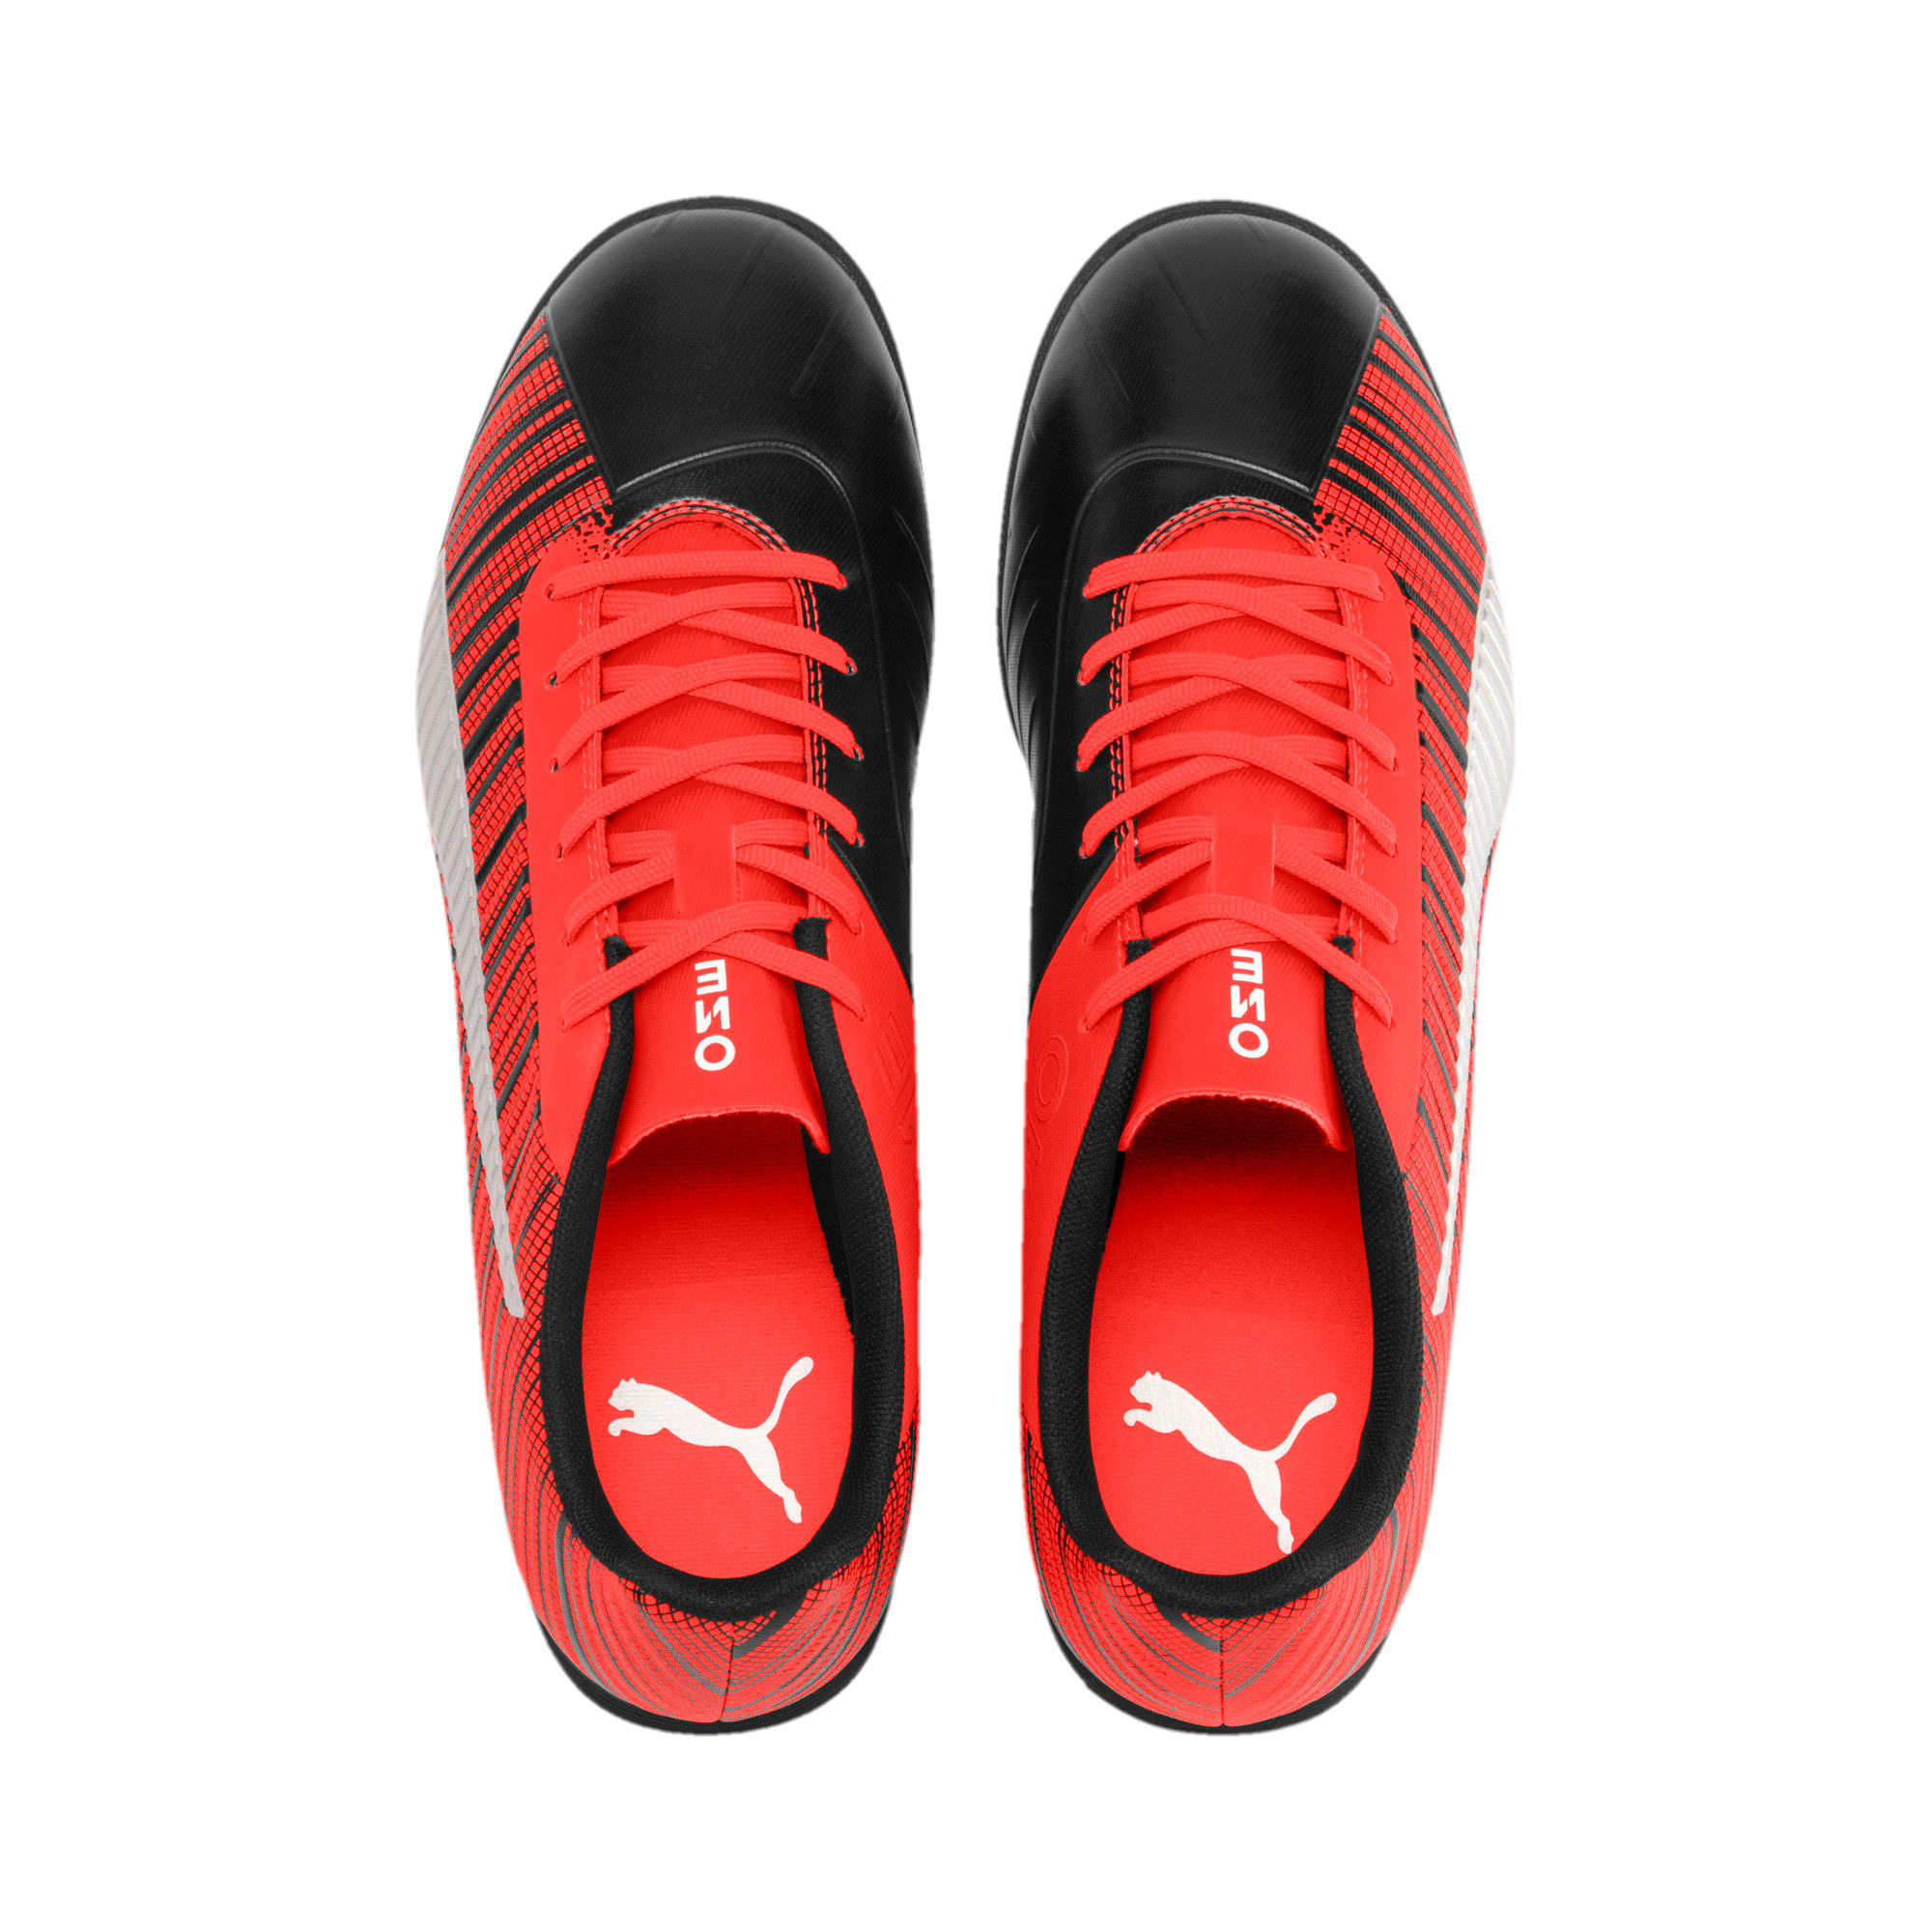 Thumbnail 7 of PUMA ONE 5.4 TT Herren Fußballschuhe, Black-Nrgy Red-Aged Silver, medium